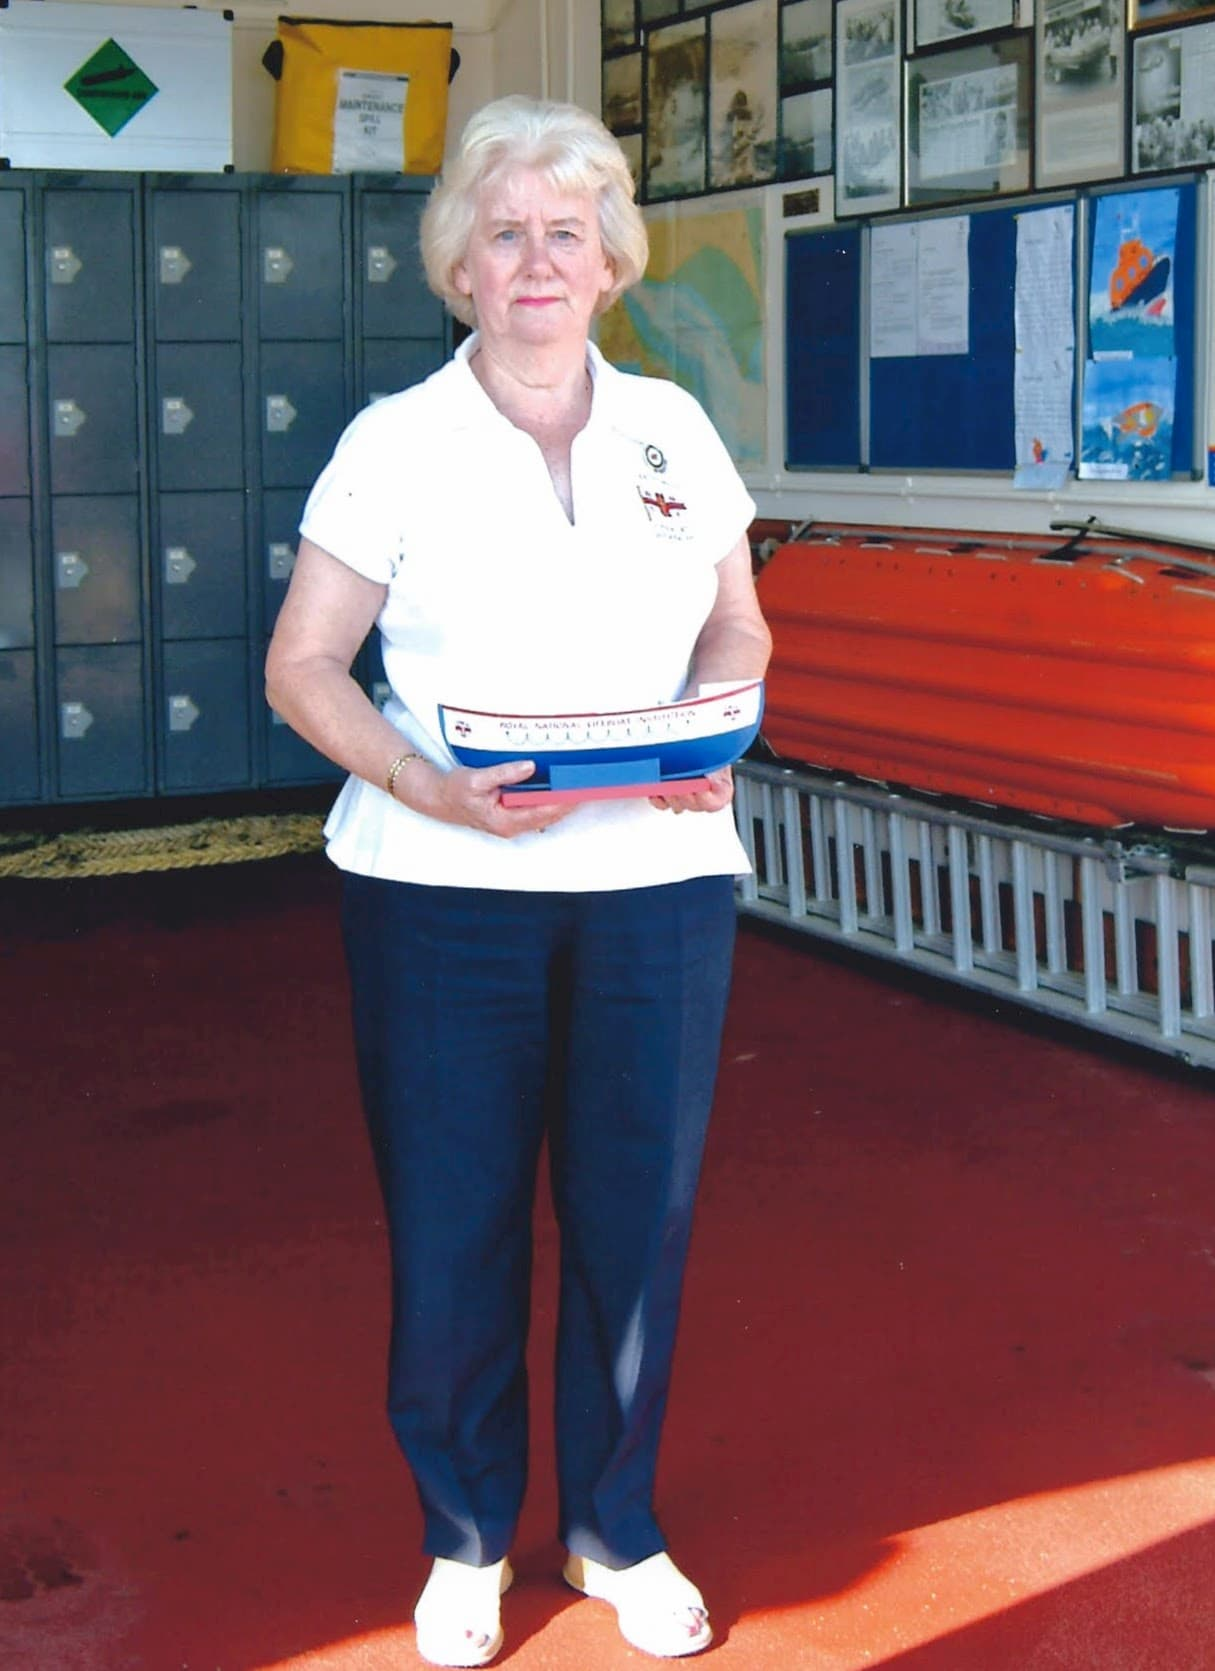 Mary Thomas has dedicated 45 years to the charity and has contributed to saving lives at sea by raising funds as the Chair at RNLI Cleethorpes Fundraising Branch